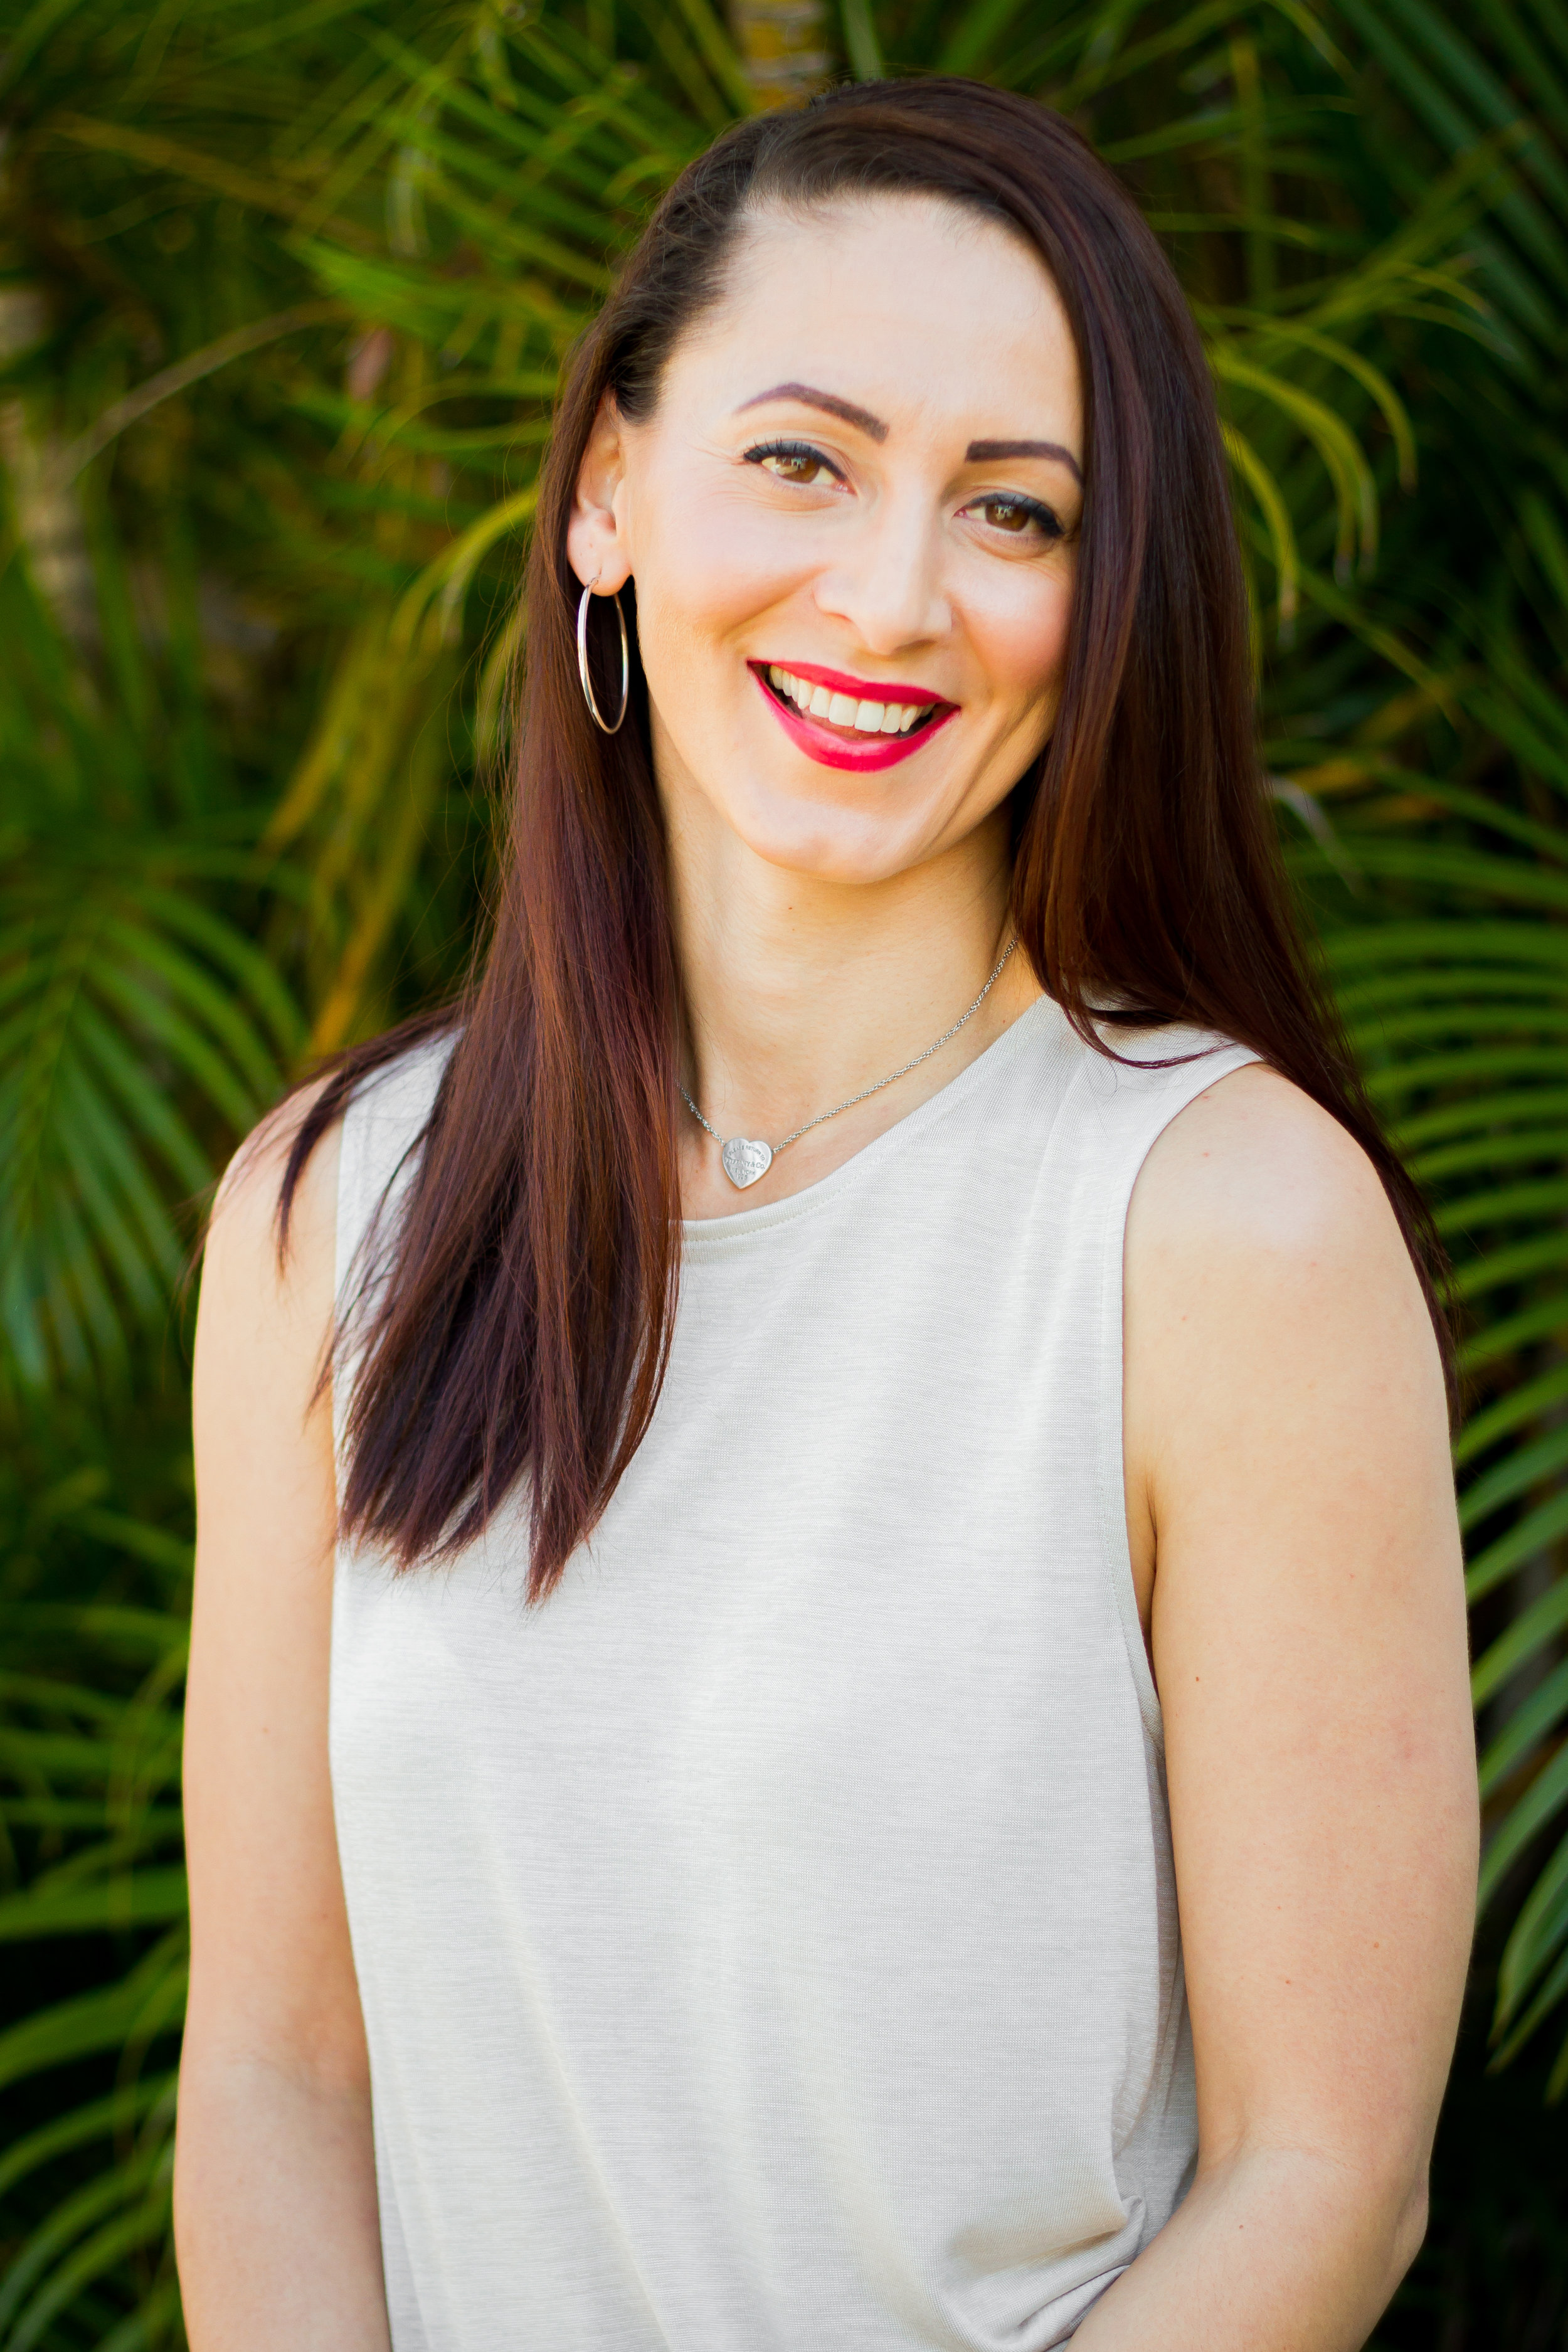 - Zsuzsanna is a passionate naturopath with over 15 years' industry experience.Having come from a corporate background herself, Zsuzsanna understands the demands of the busy, modern world we live in, and is particularly passionate about helping busy people prevent burn out, and achieve their best health possible.Zsuzsanna also has a special interest in mental health and uses functional pathology testing, together with nutritional and herbal therapies, to provide holistic, mental health solutions.Drop me an email here to see how I can help you achieve YOUR health goals.